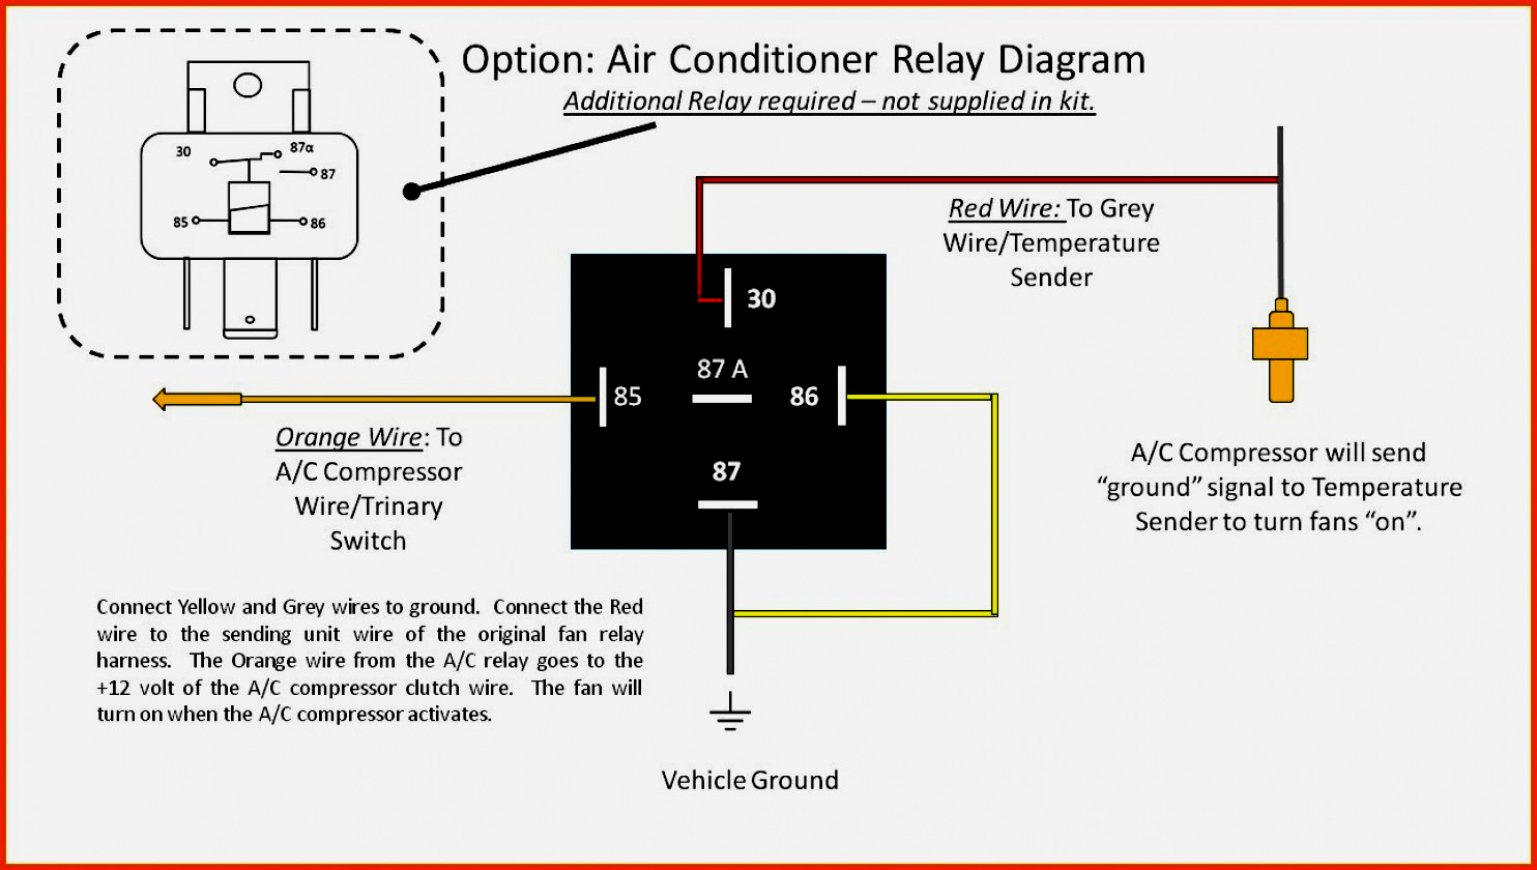 Hvac Relay Wiring - Wiring Diagram Description - Hvac Relay Wiring Diagram